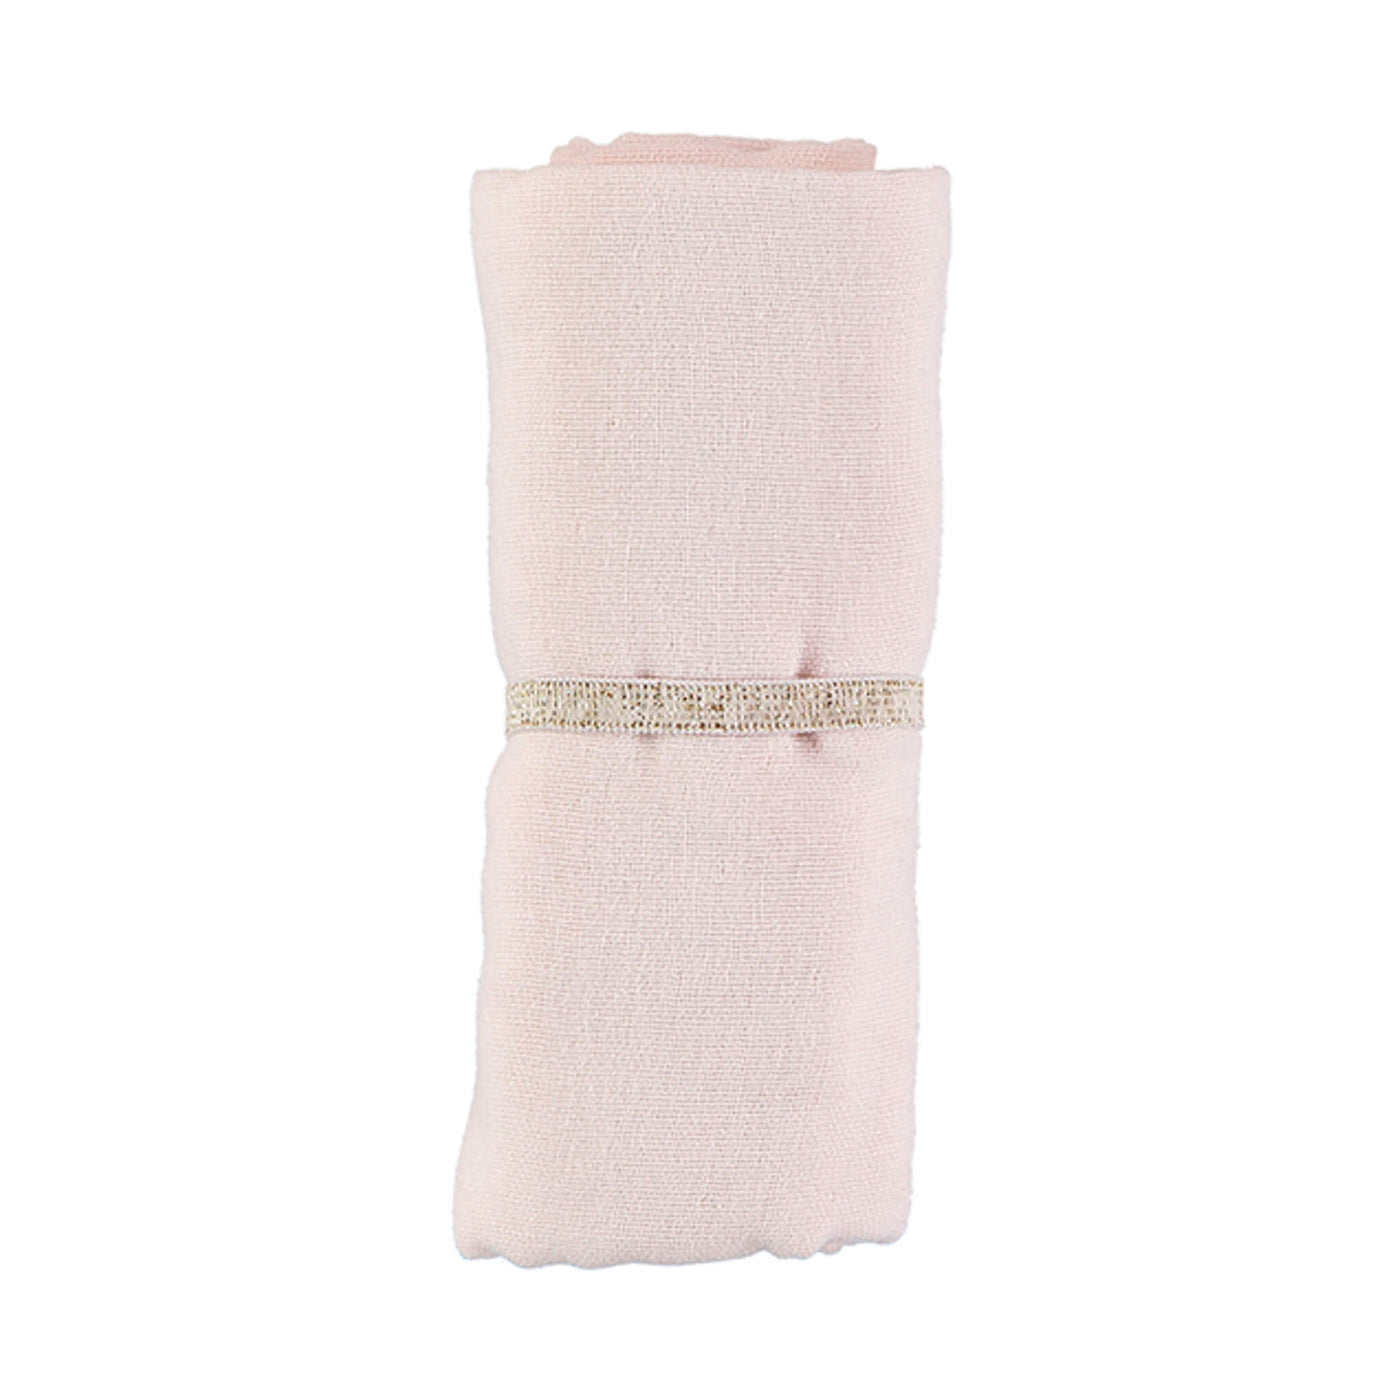 Organic Butterfly Swaddle - Dream Pink